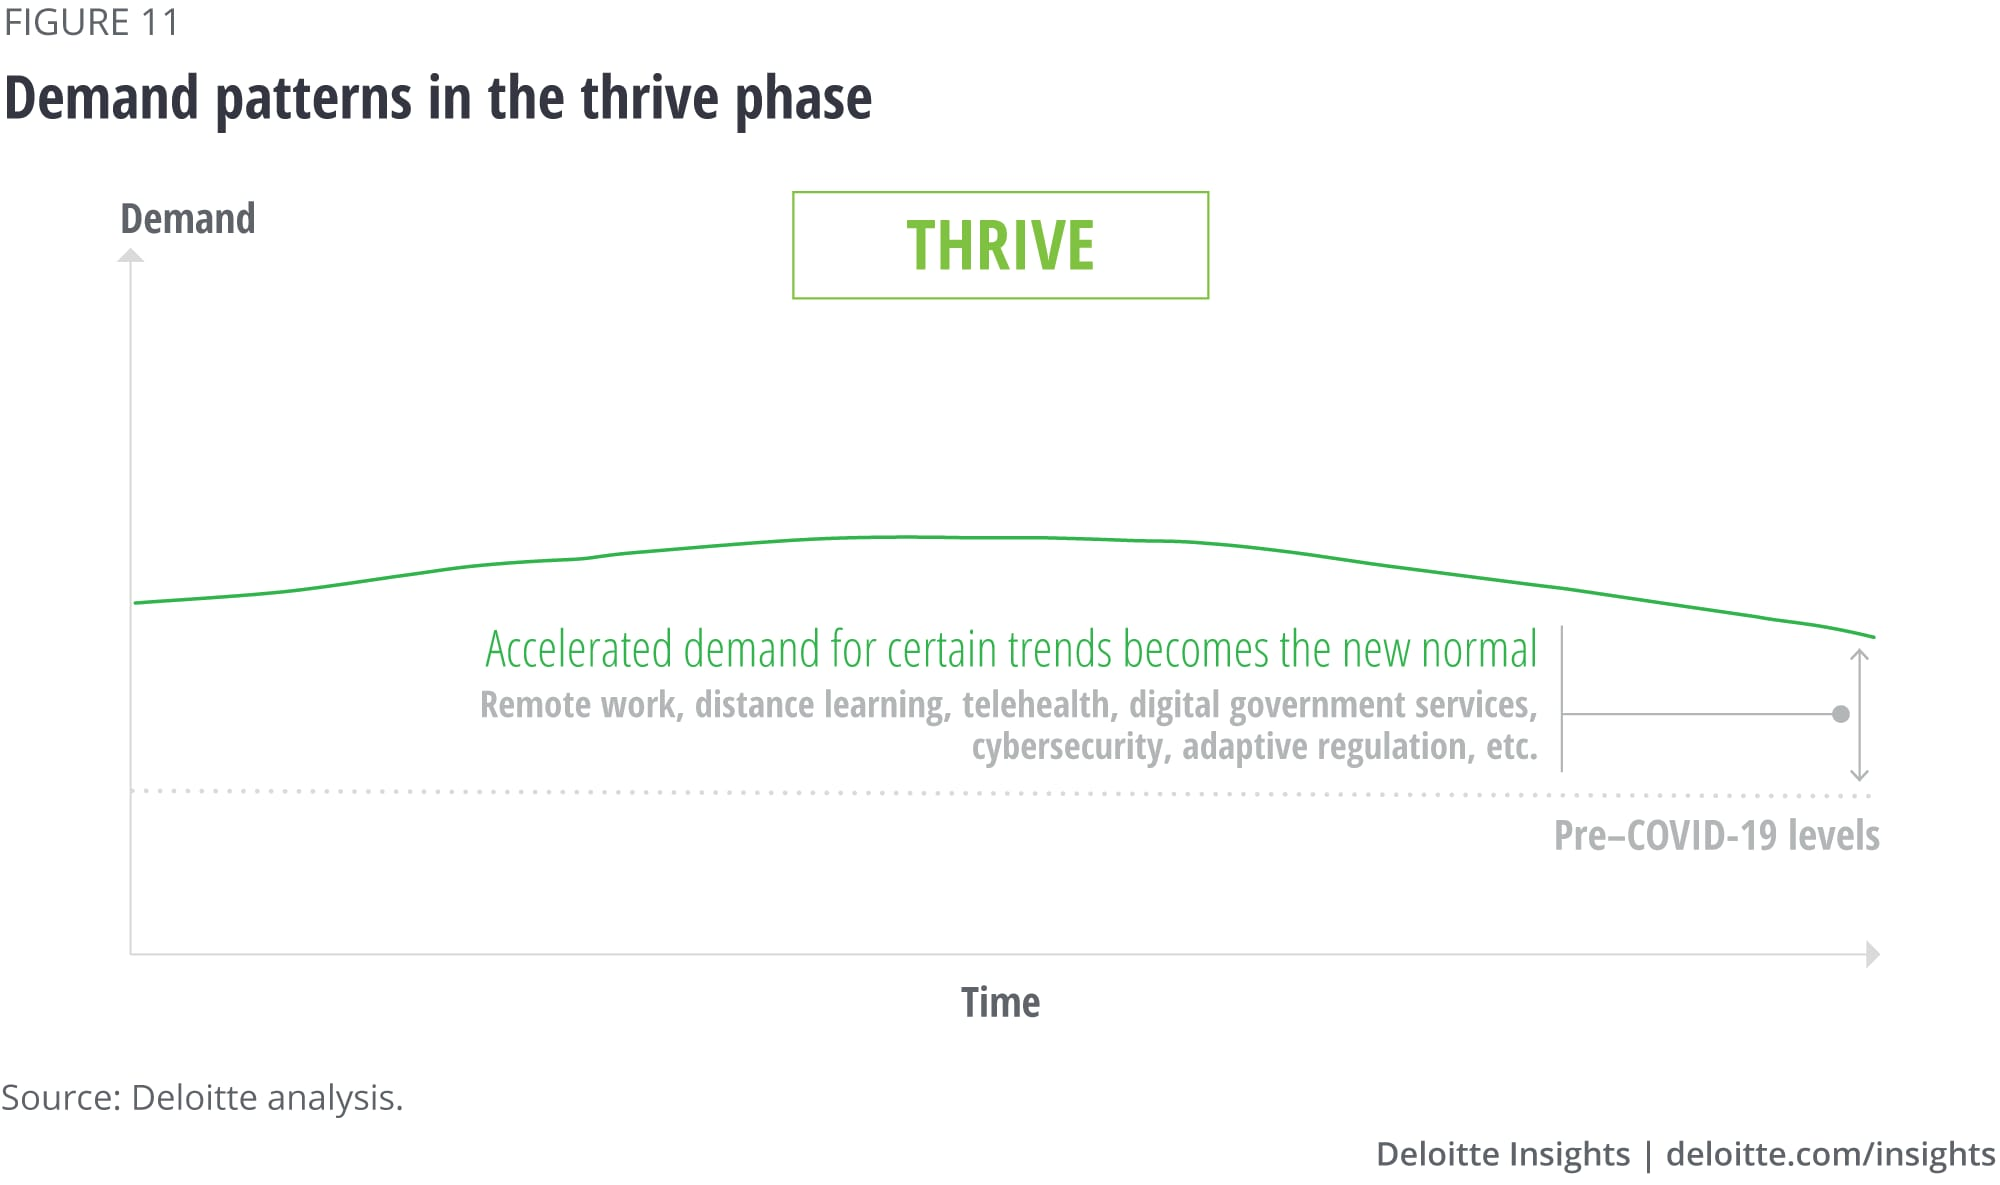 Demand patterns in the thrive phase